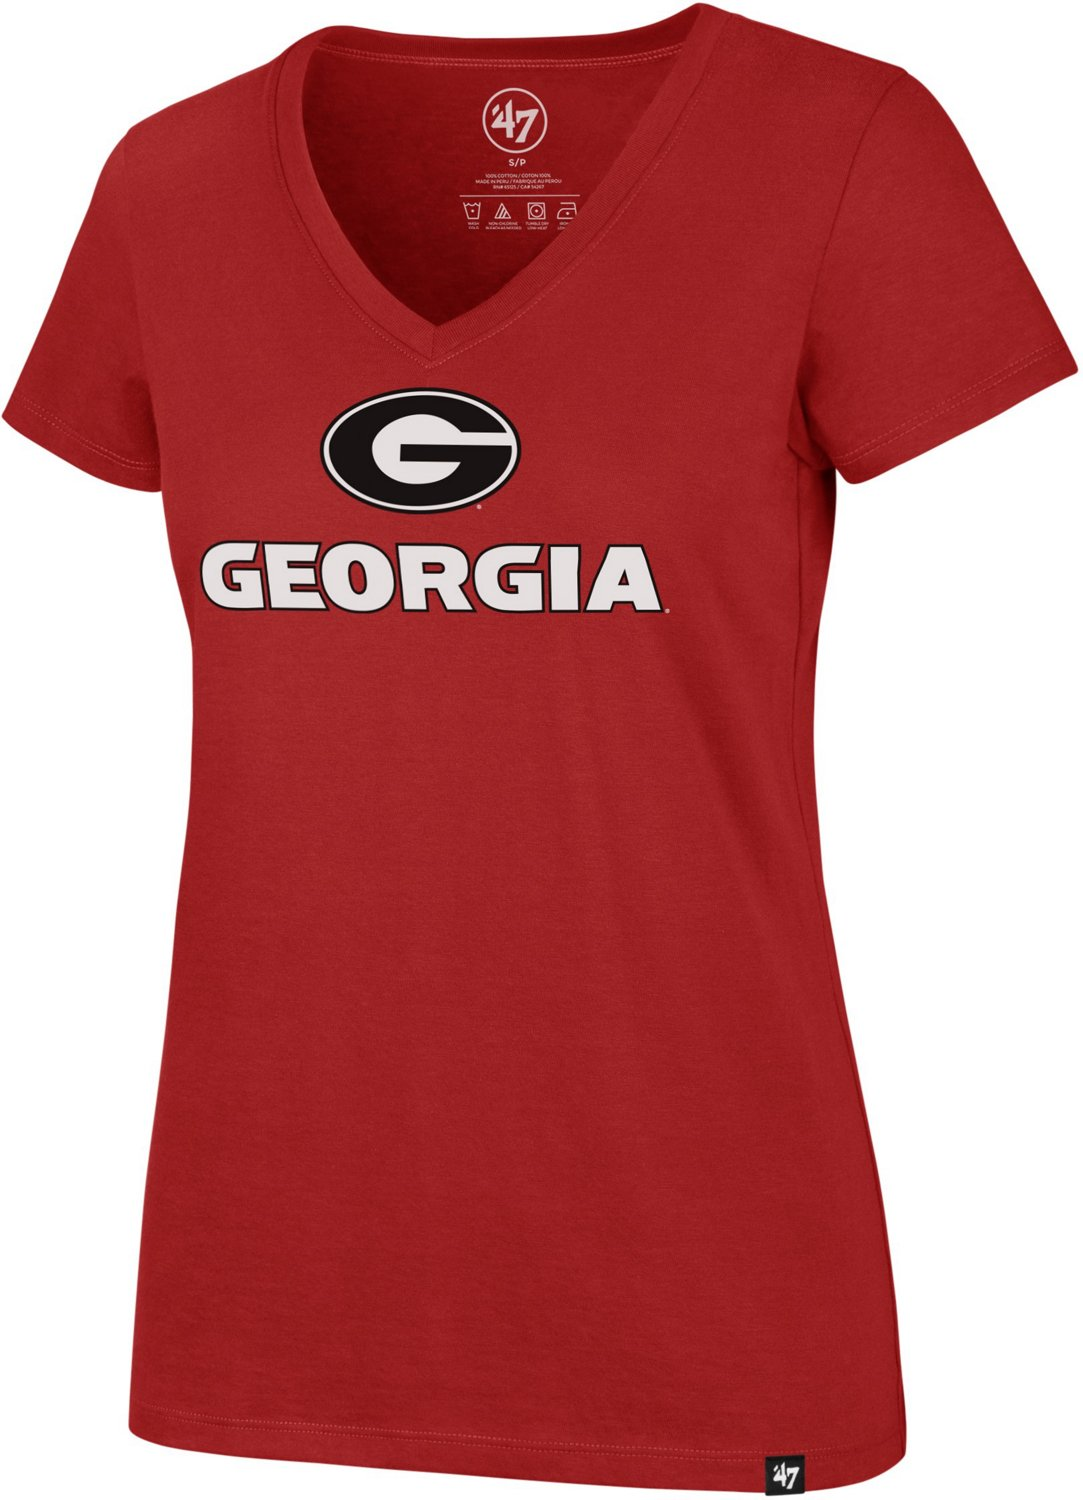 773b5d92b9e '47 University of Georgia Women's Imprint Ultra Rival V-neck T-shirt |  Academy